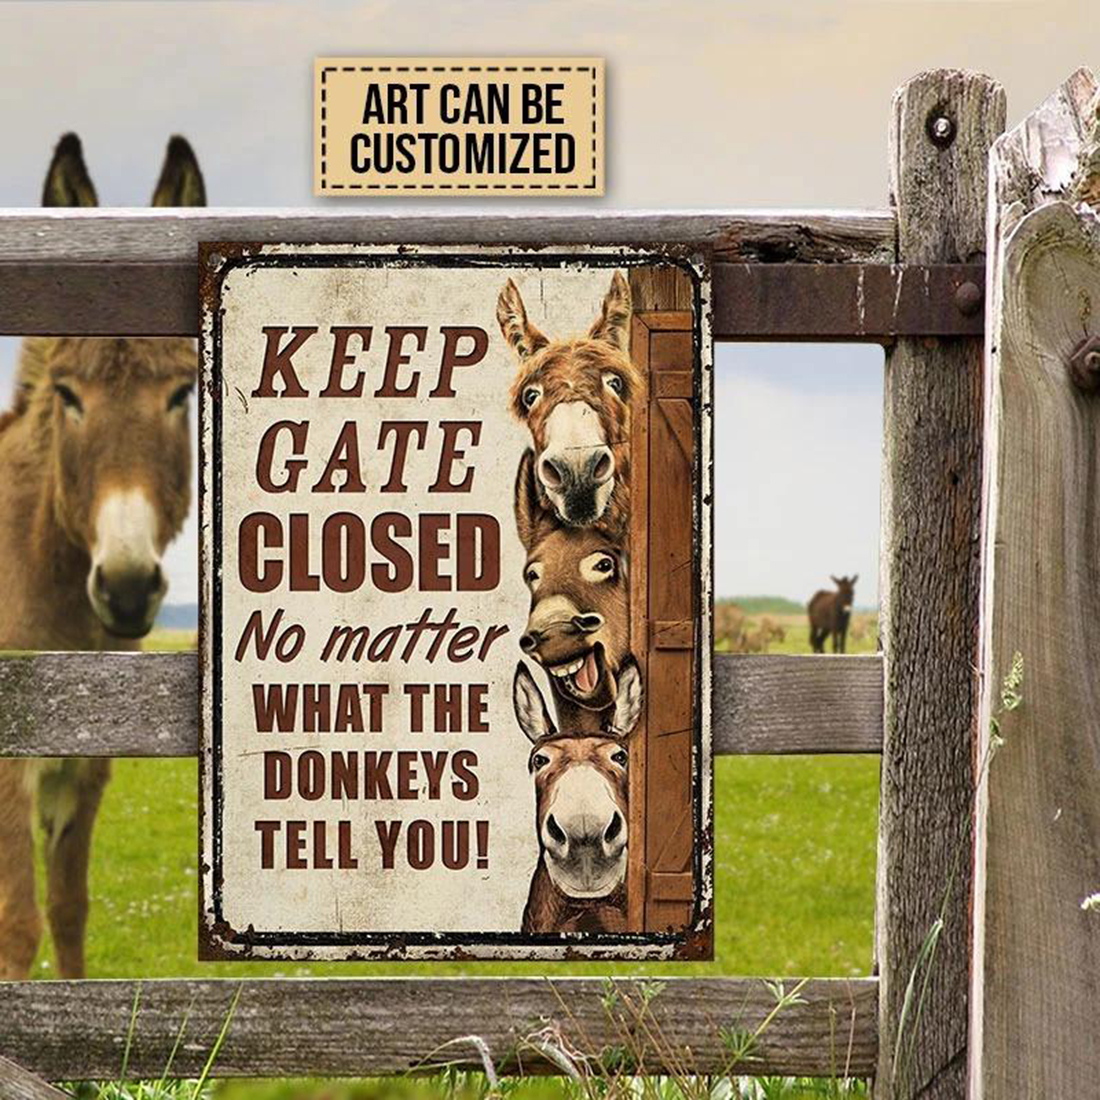 Keep gate closed no matter what the donkeys tell you metal sign